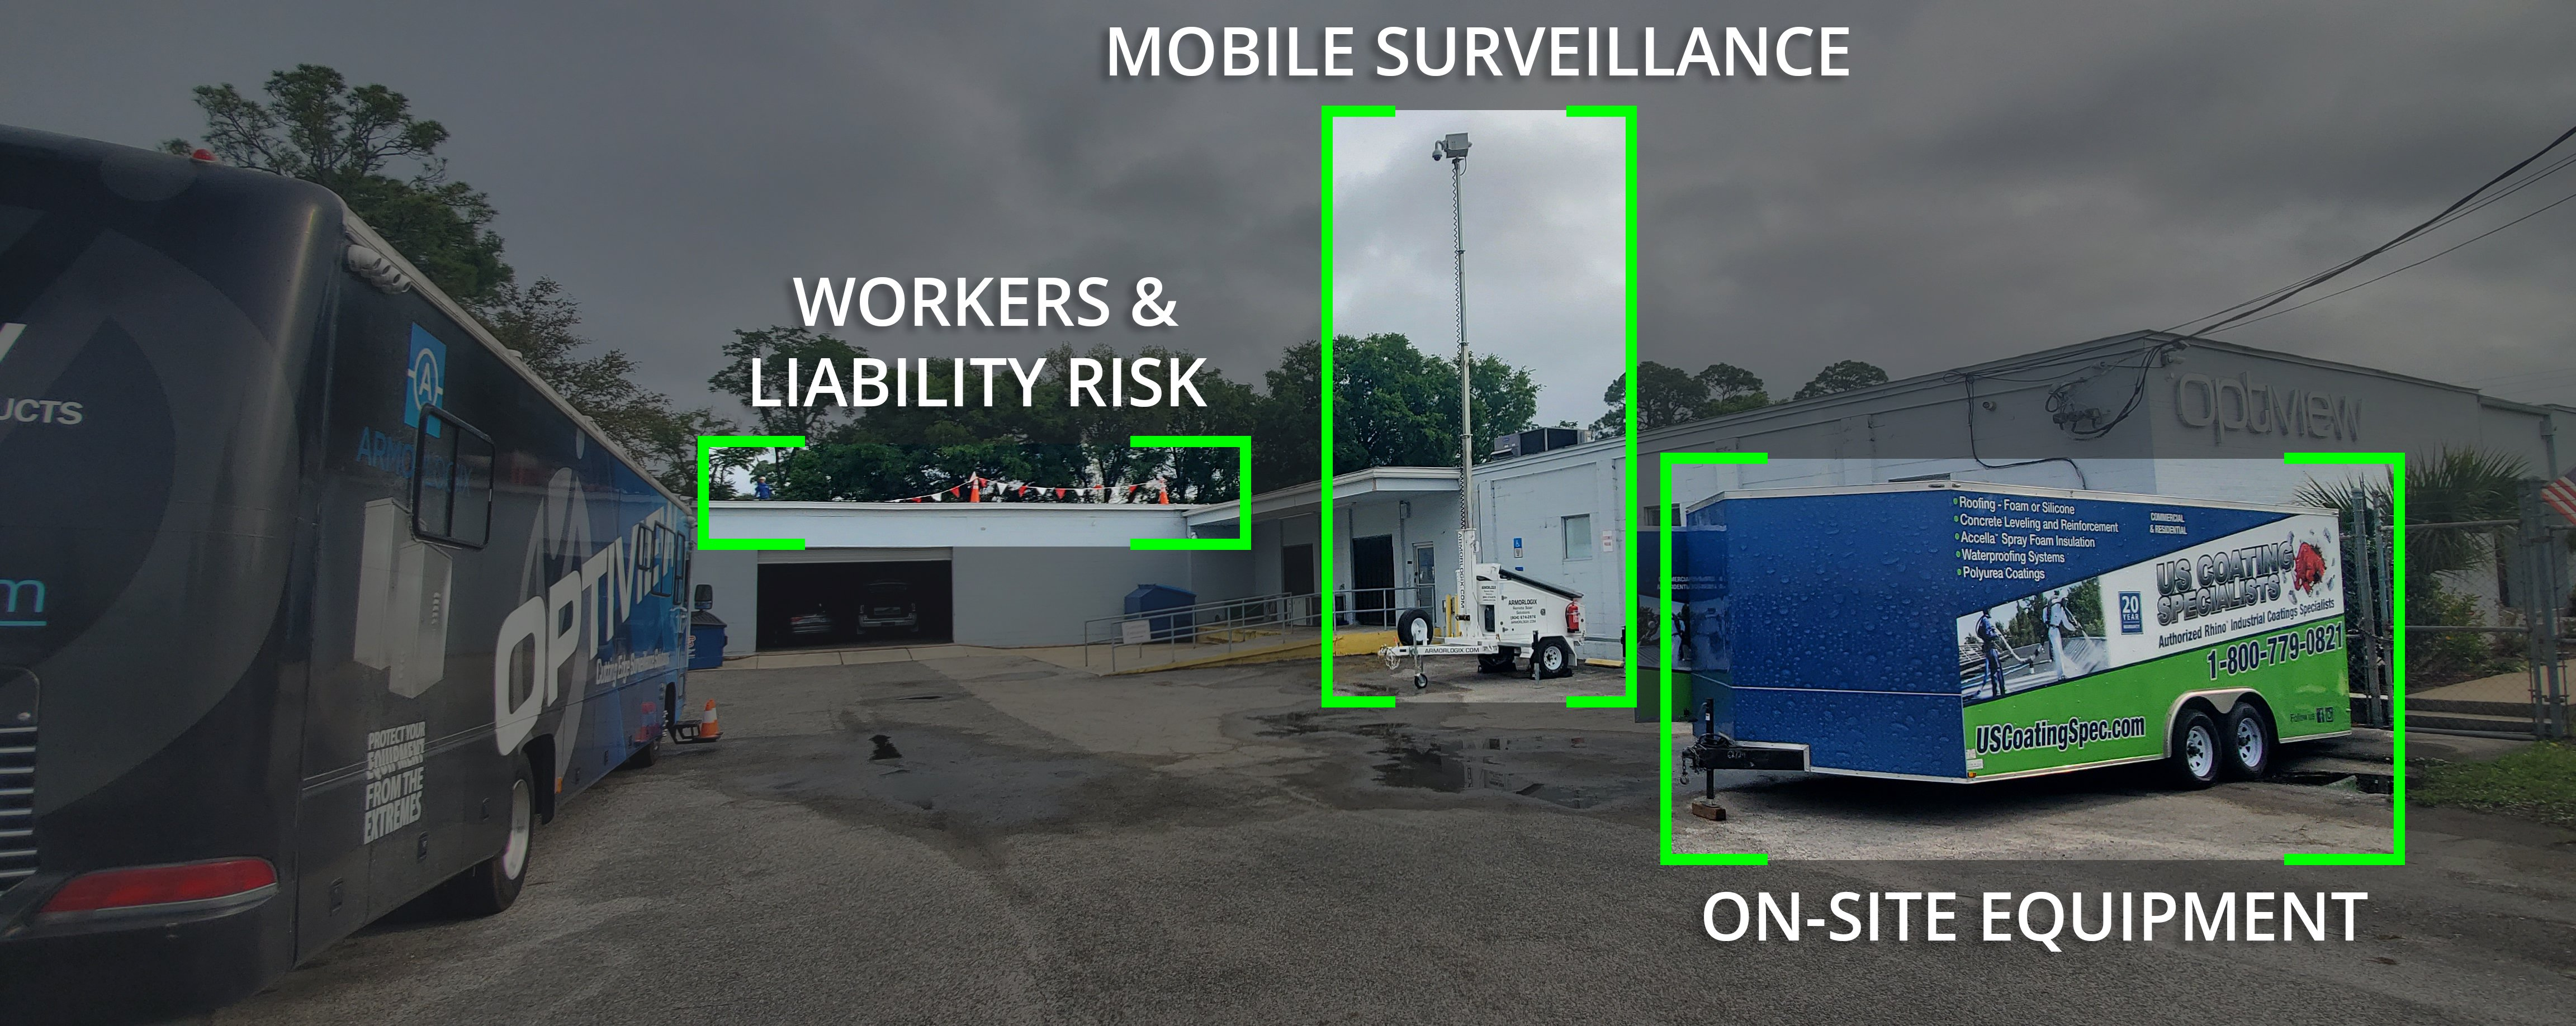 multiple-coverage-areas_mobile-surveillance-roofing-contractor